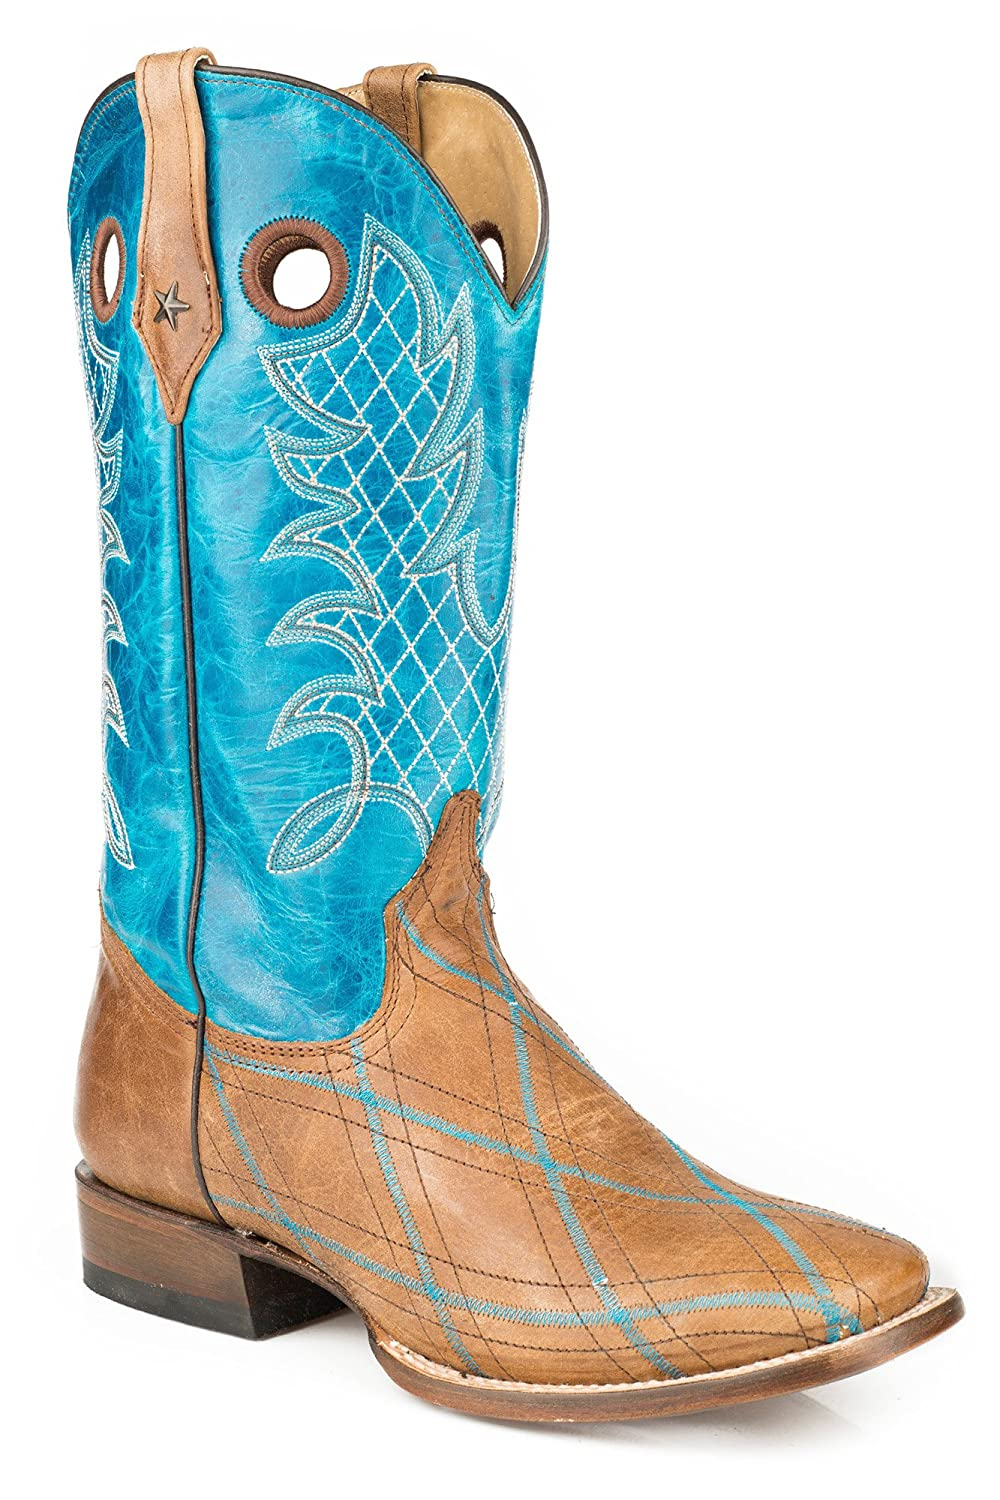 Roper Men's Embroidered Basic Cowboy Boot Square Toe - 09-020-7026-0736 Br